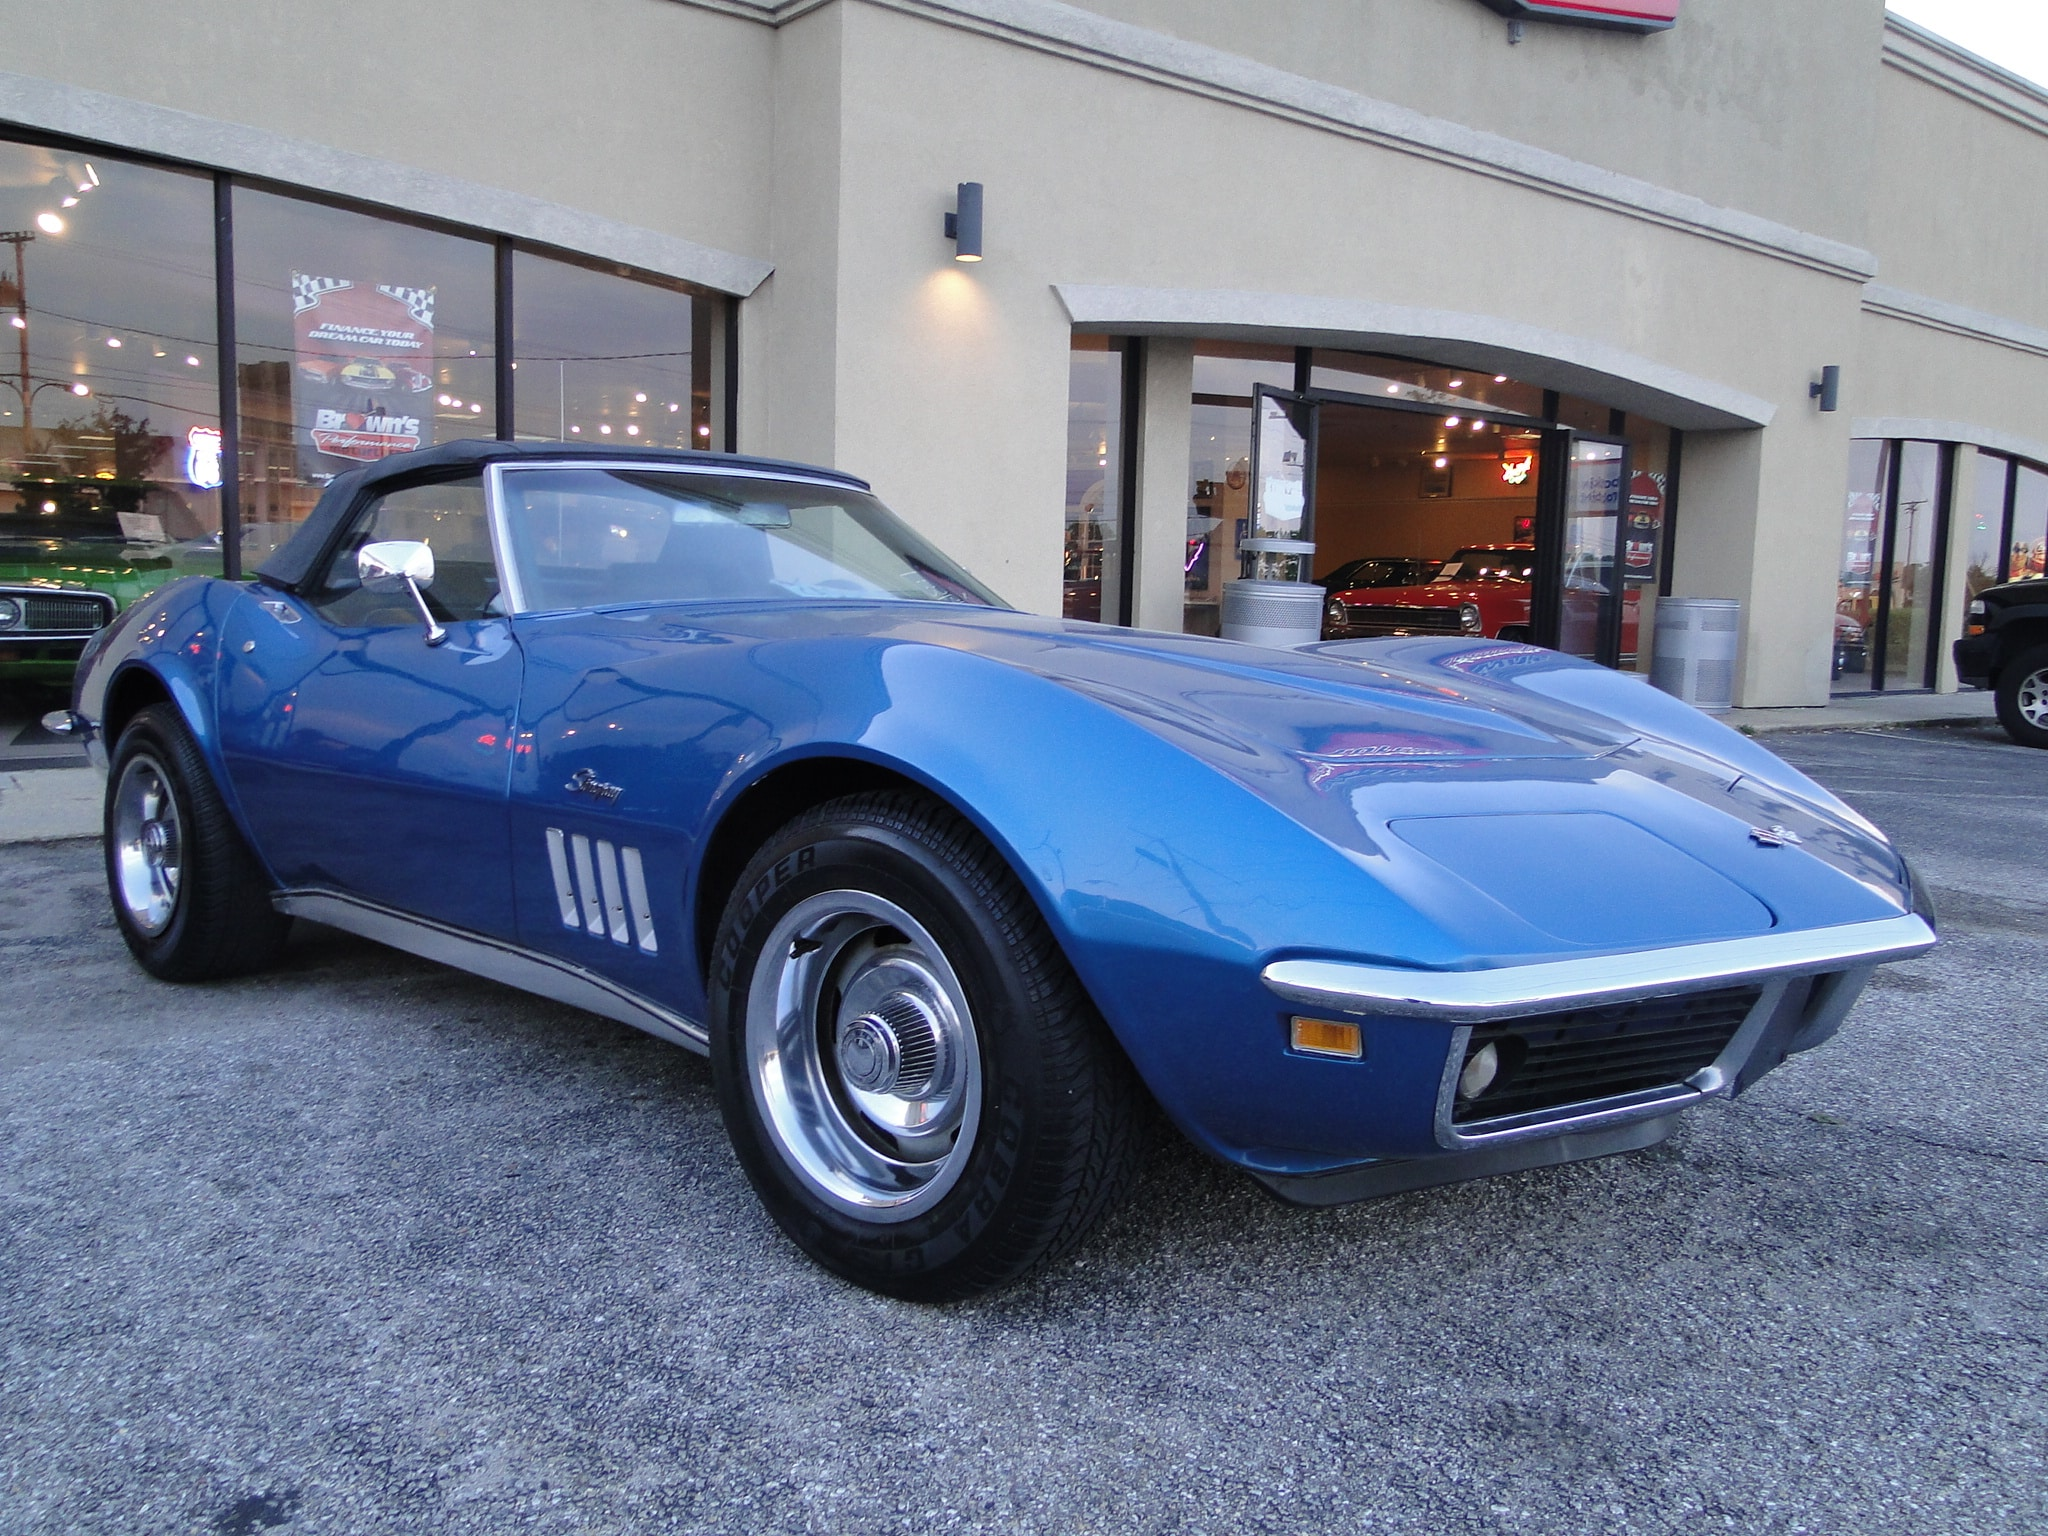 1969 Chevrolet Corvette Stingray Convertible! Convertible Glen Burnie MD